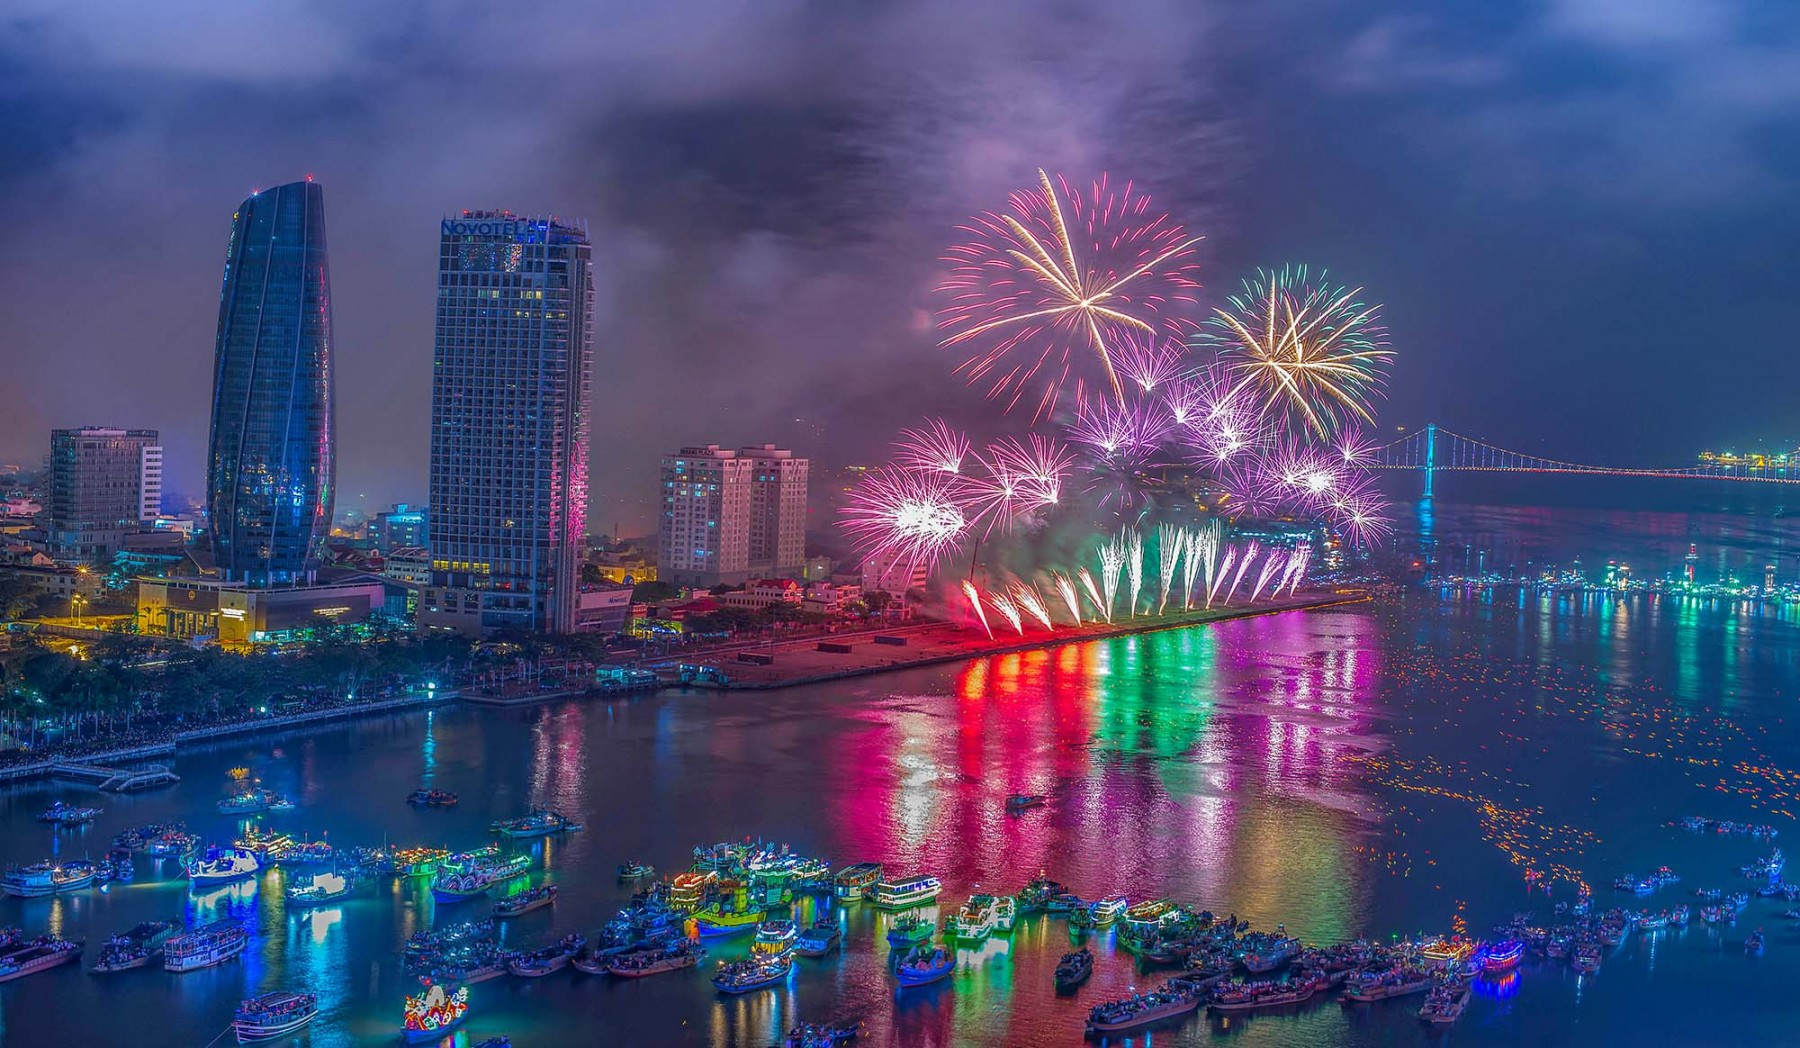 Danang international firework competition, Han river, Russia, Brazil, Belgium, Finland, Italy, England, China, Vietnam